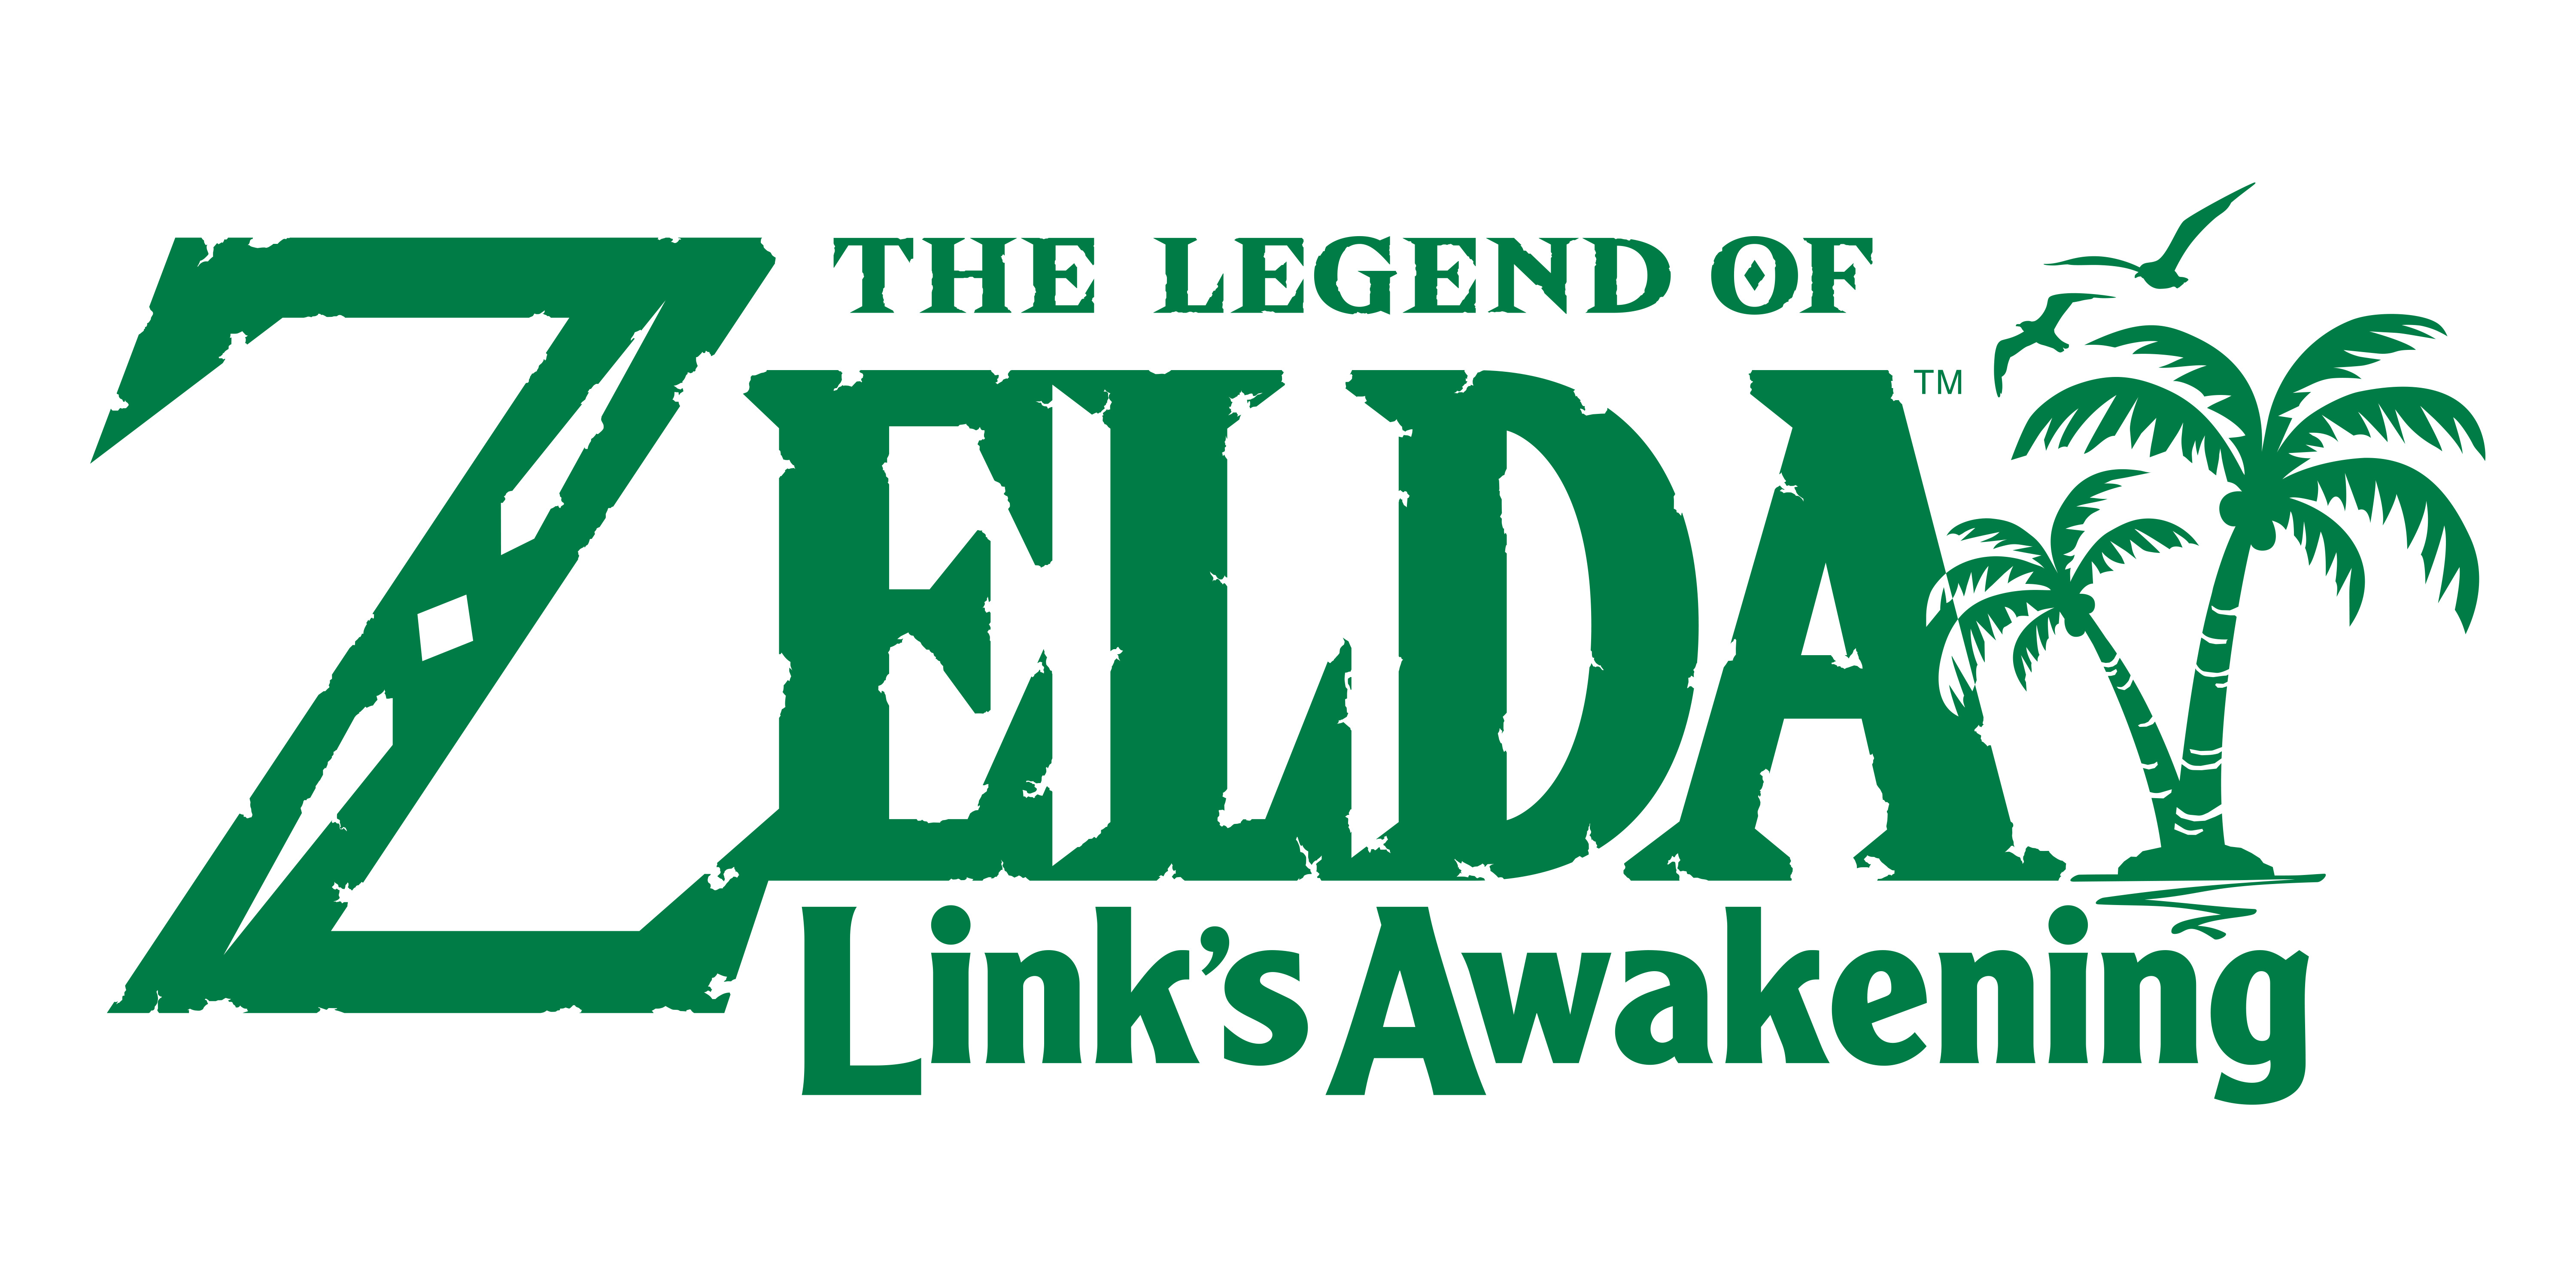 Links-Awakening-Logo.jpg